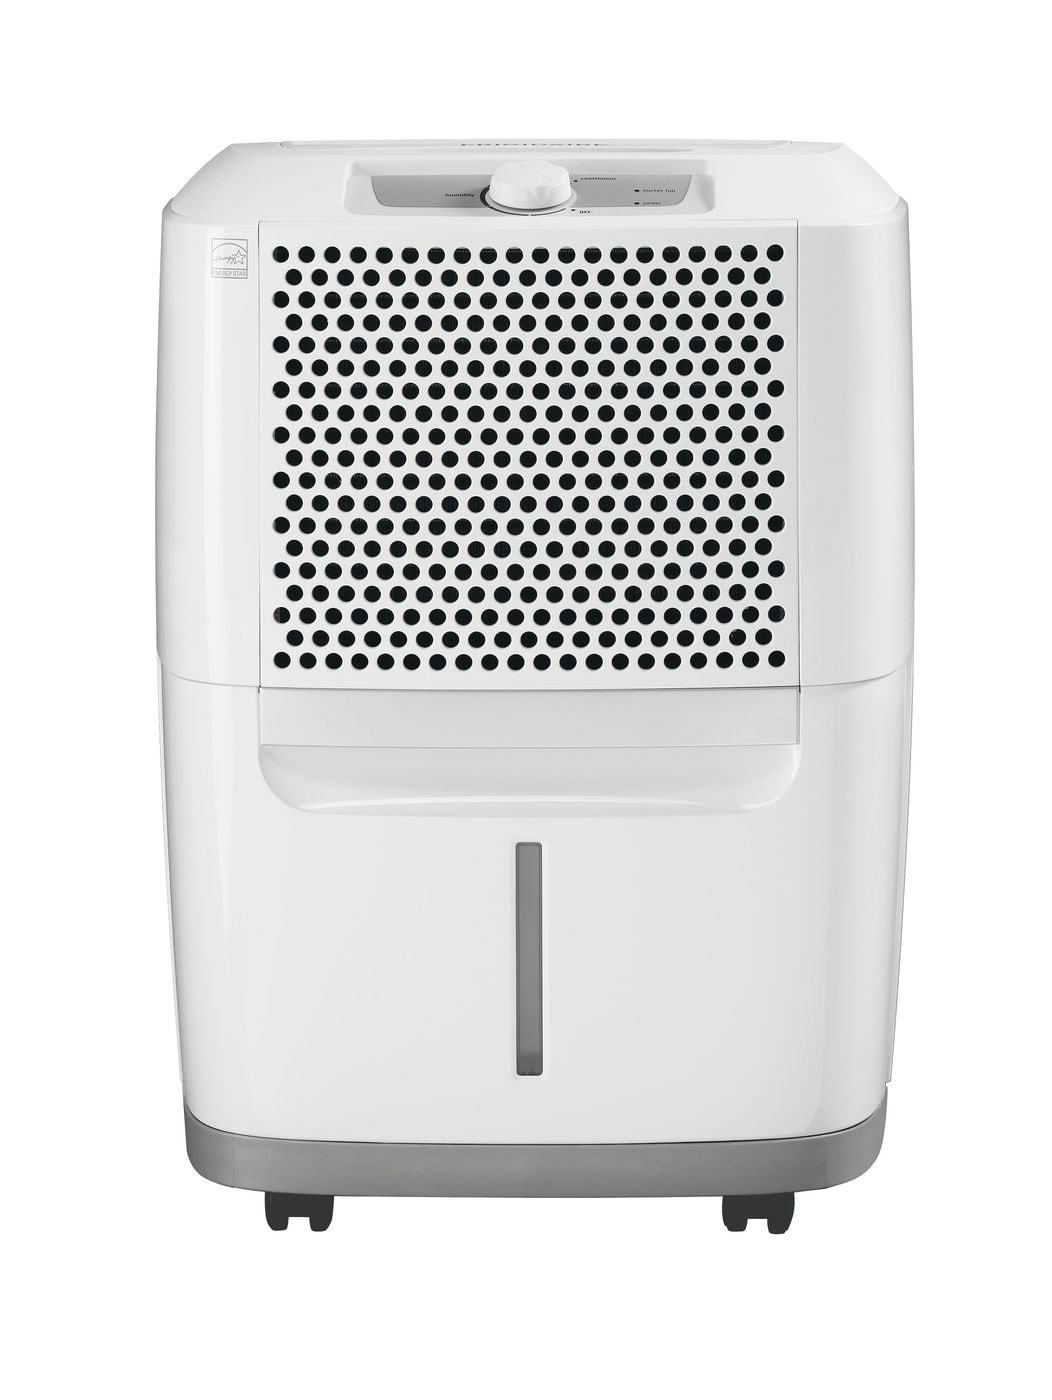 Frigidaire FAD301NWD Energy Star 30-Pint Dehumidifier on